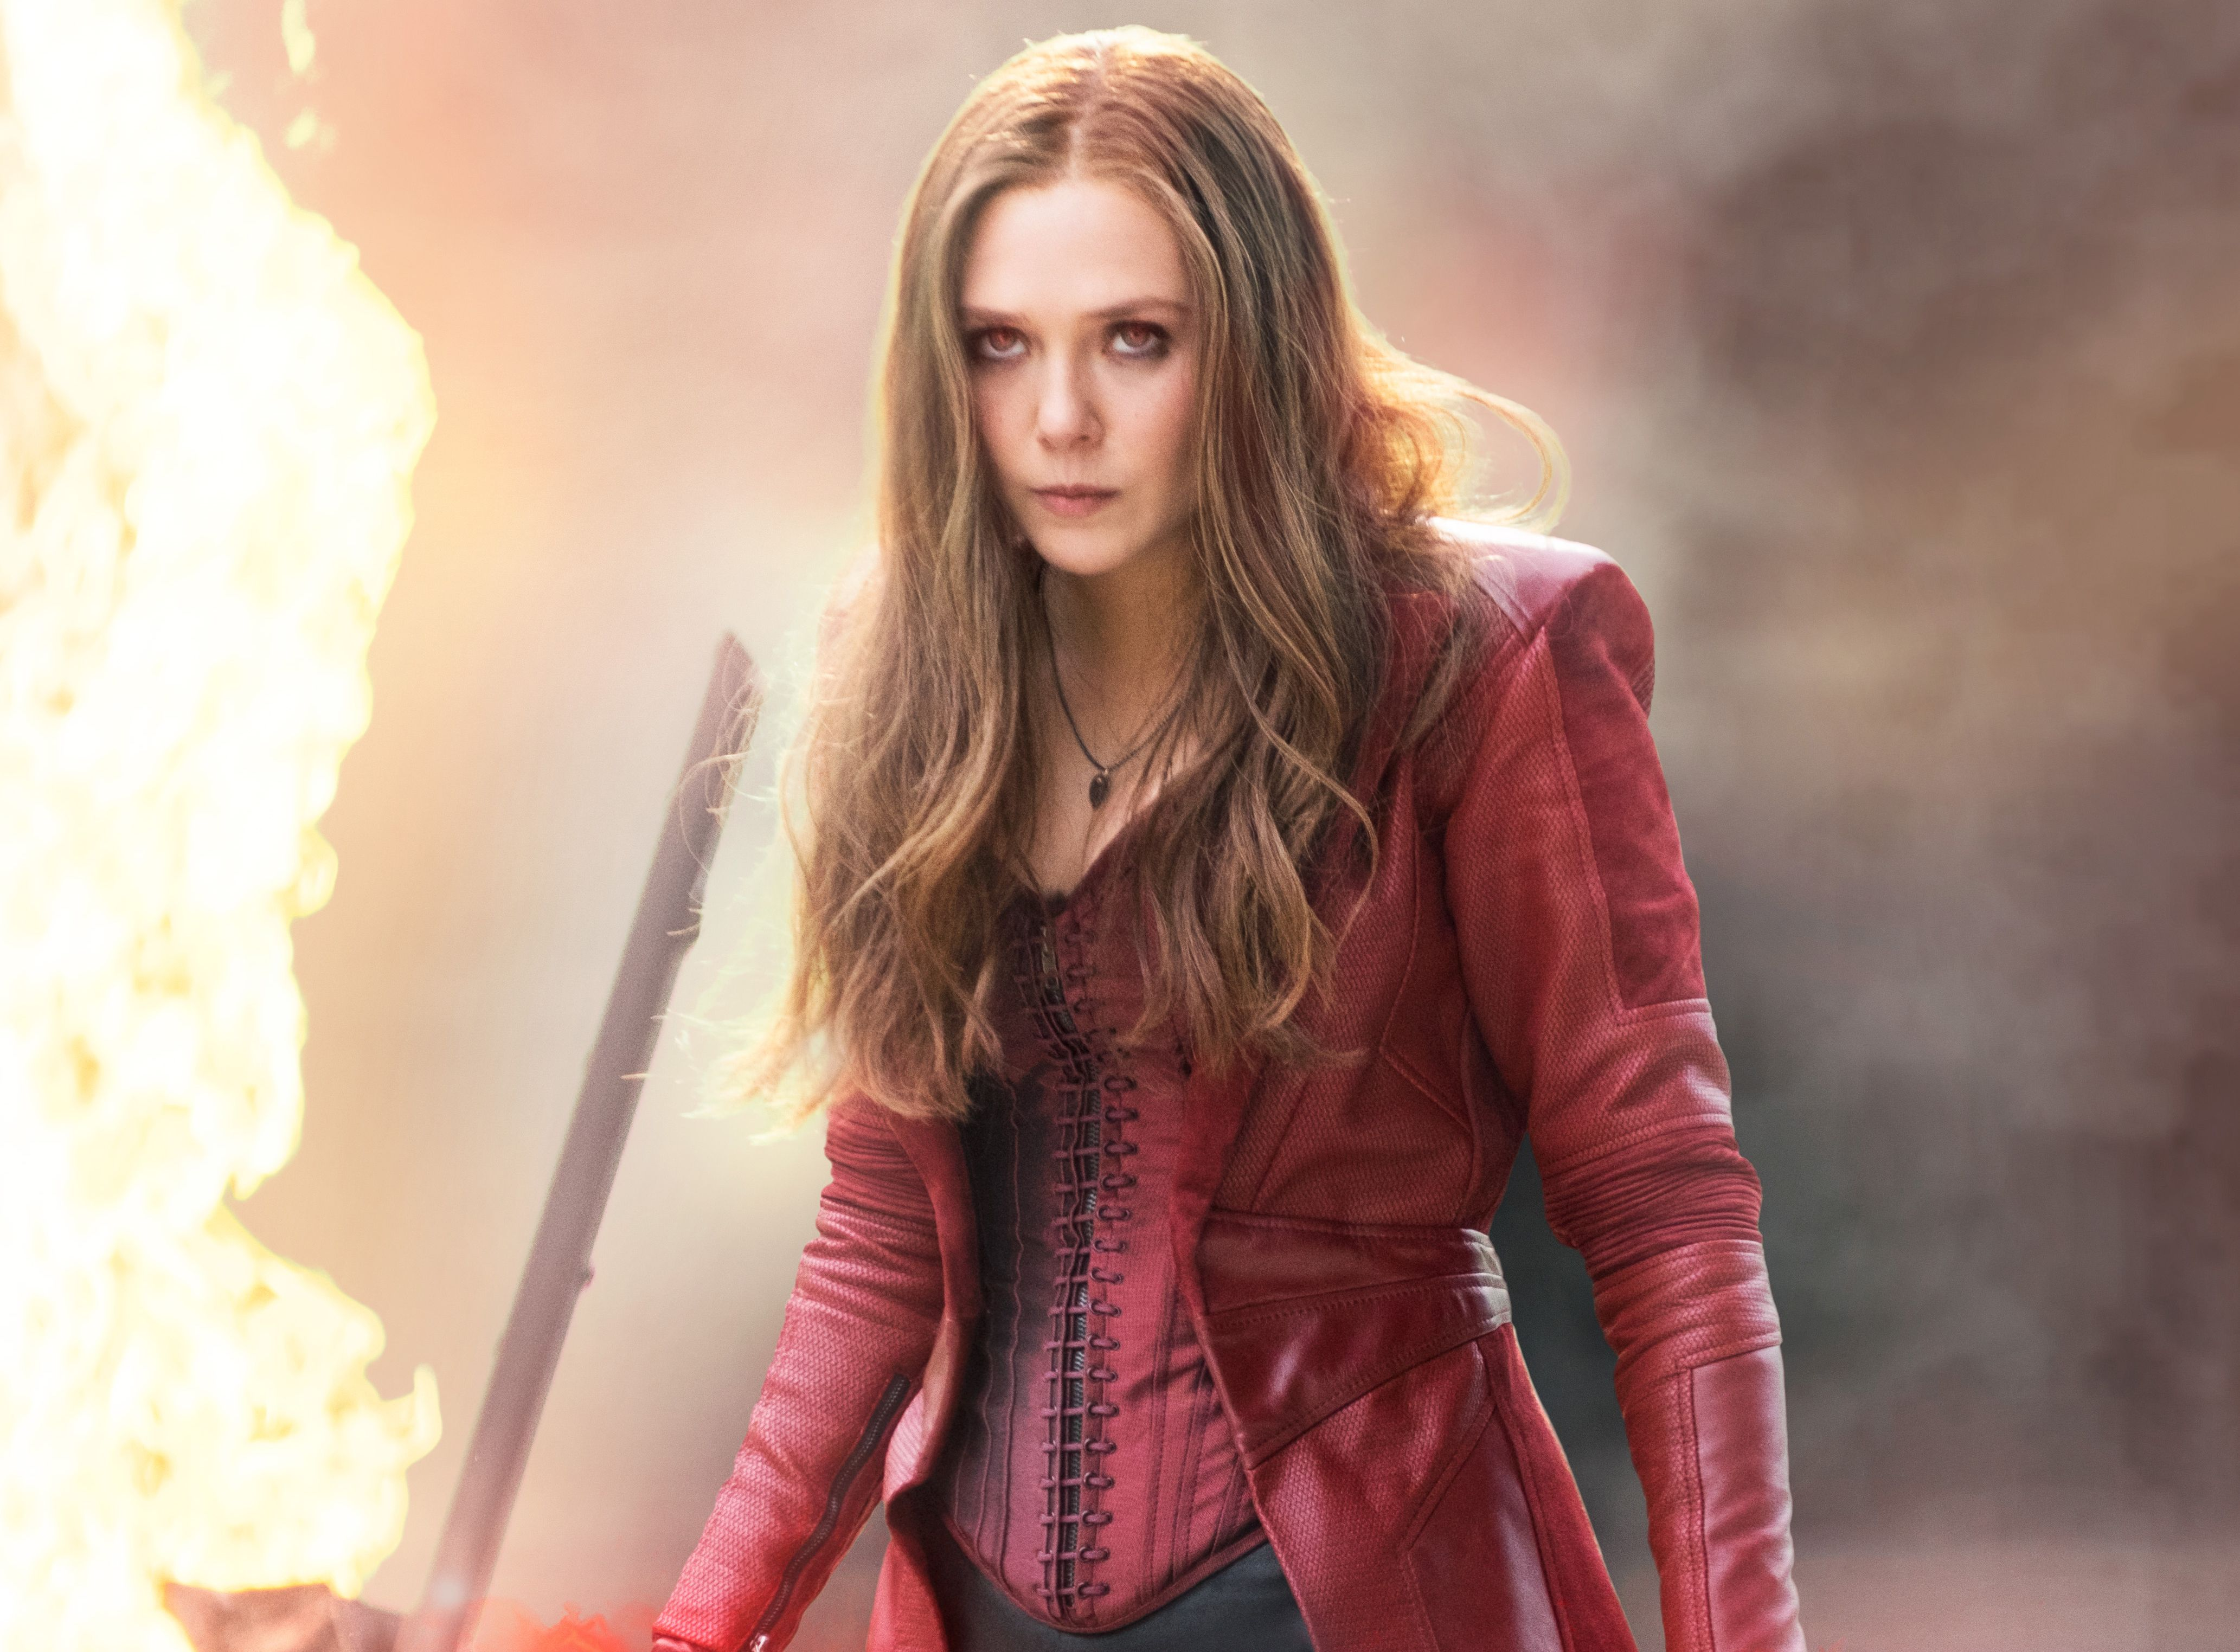 This comics storyline suggests how the Scarlet Witch and